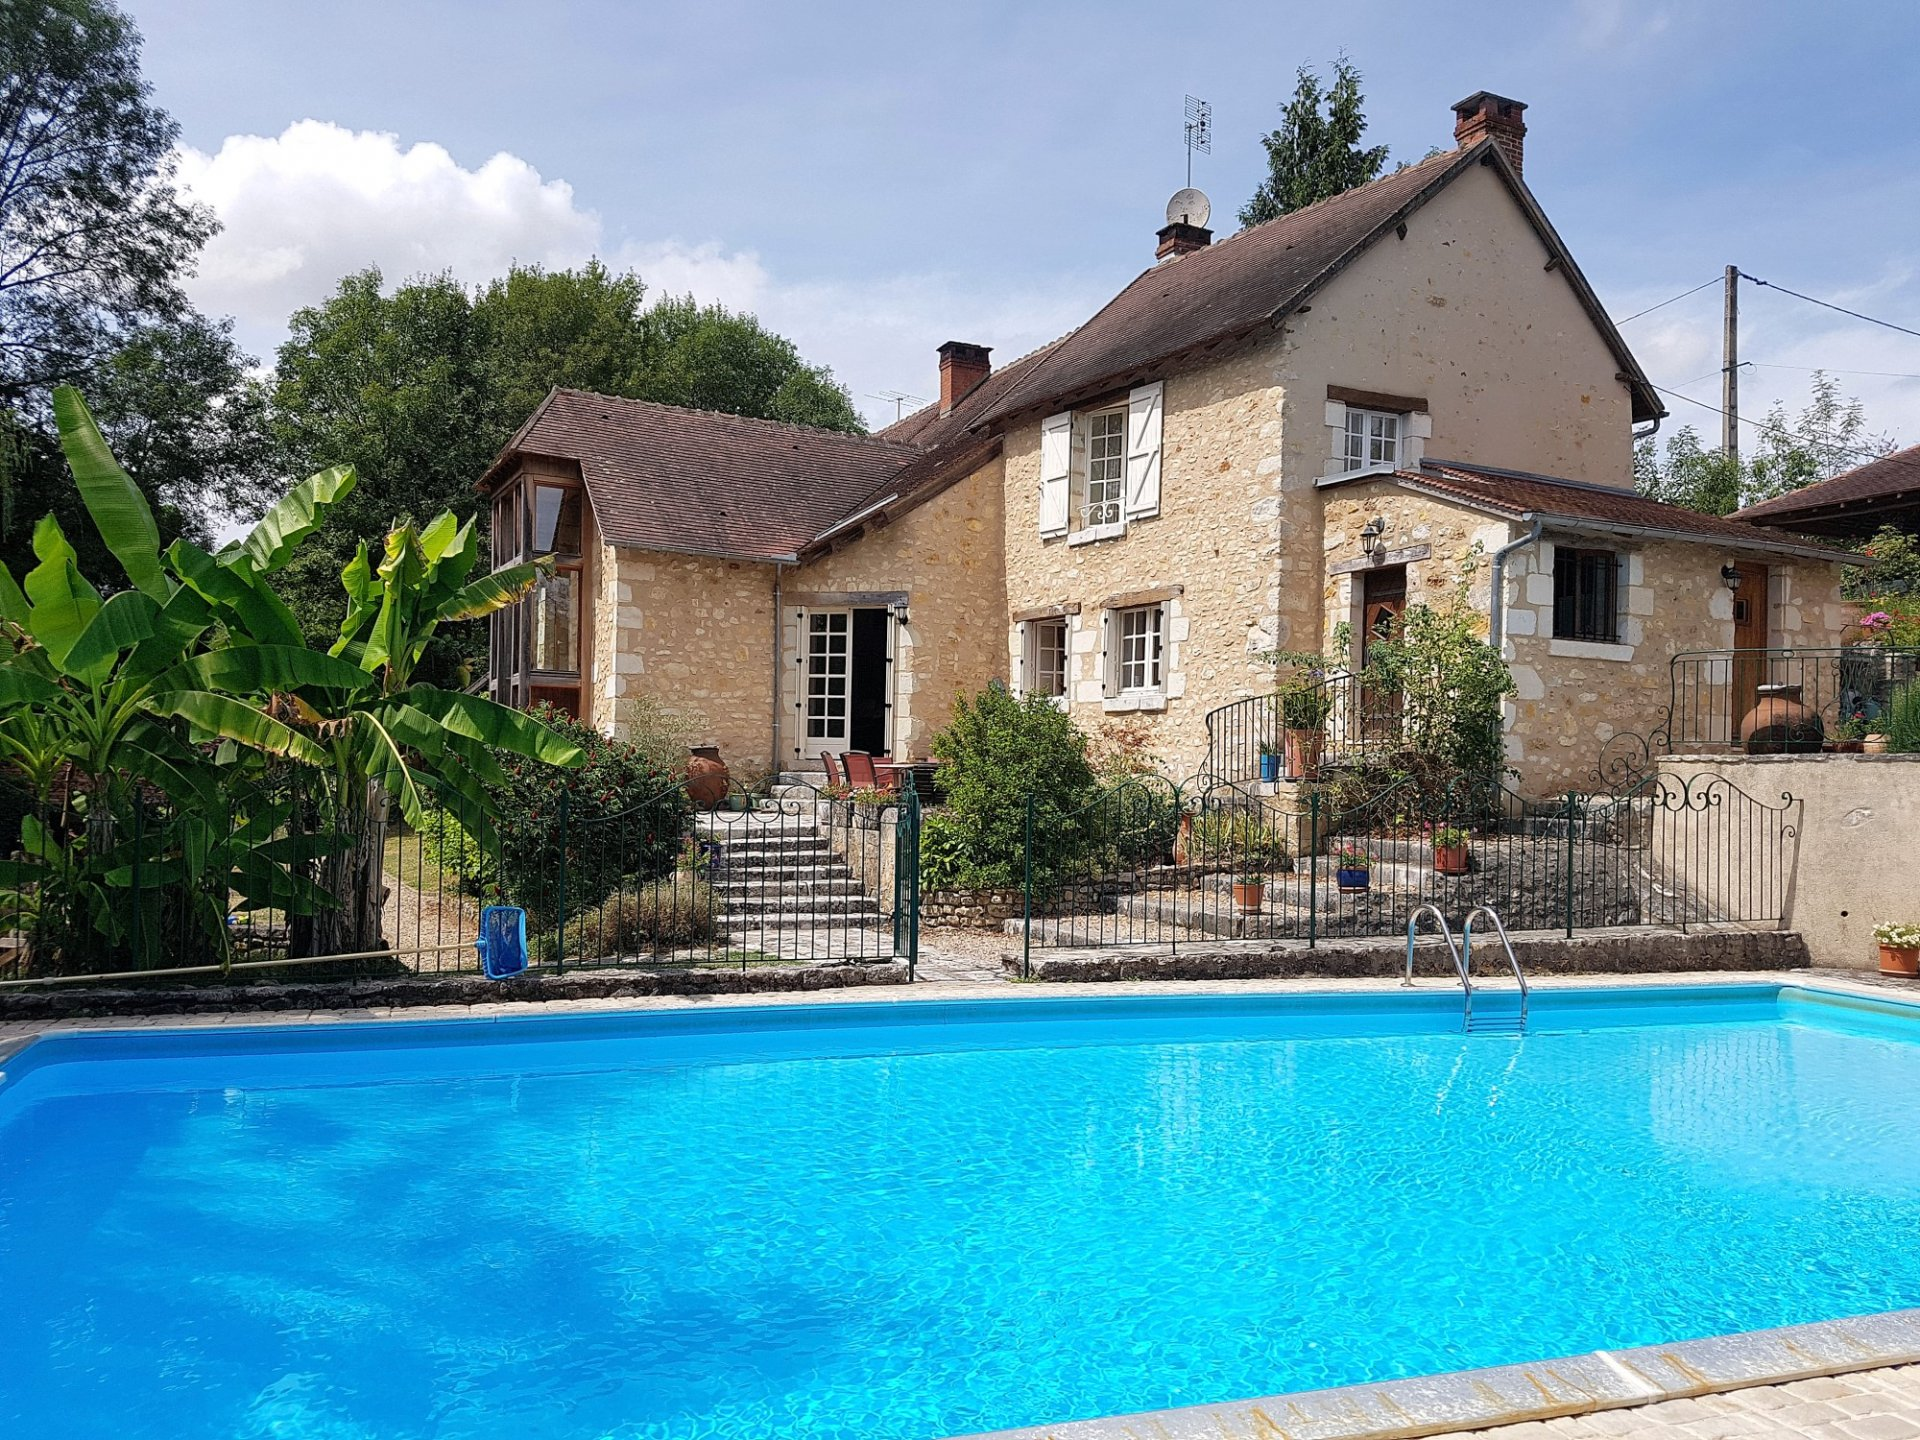 Riverside house with gite for sale near Le Blanc 36